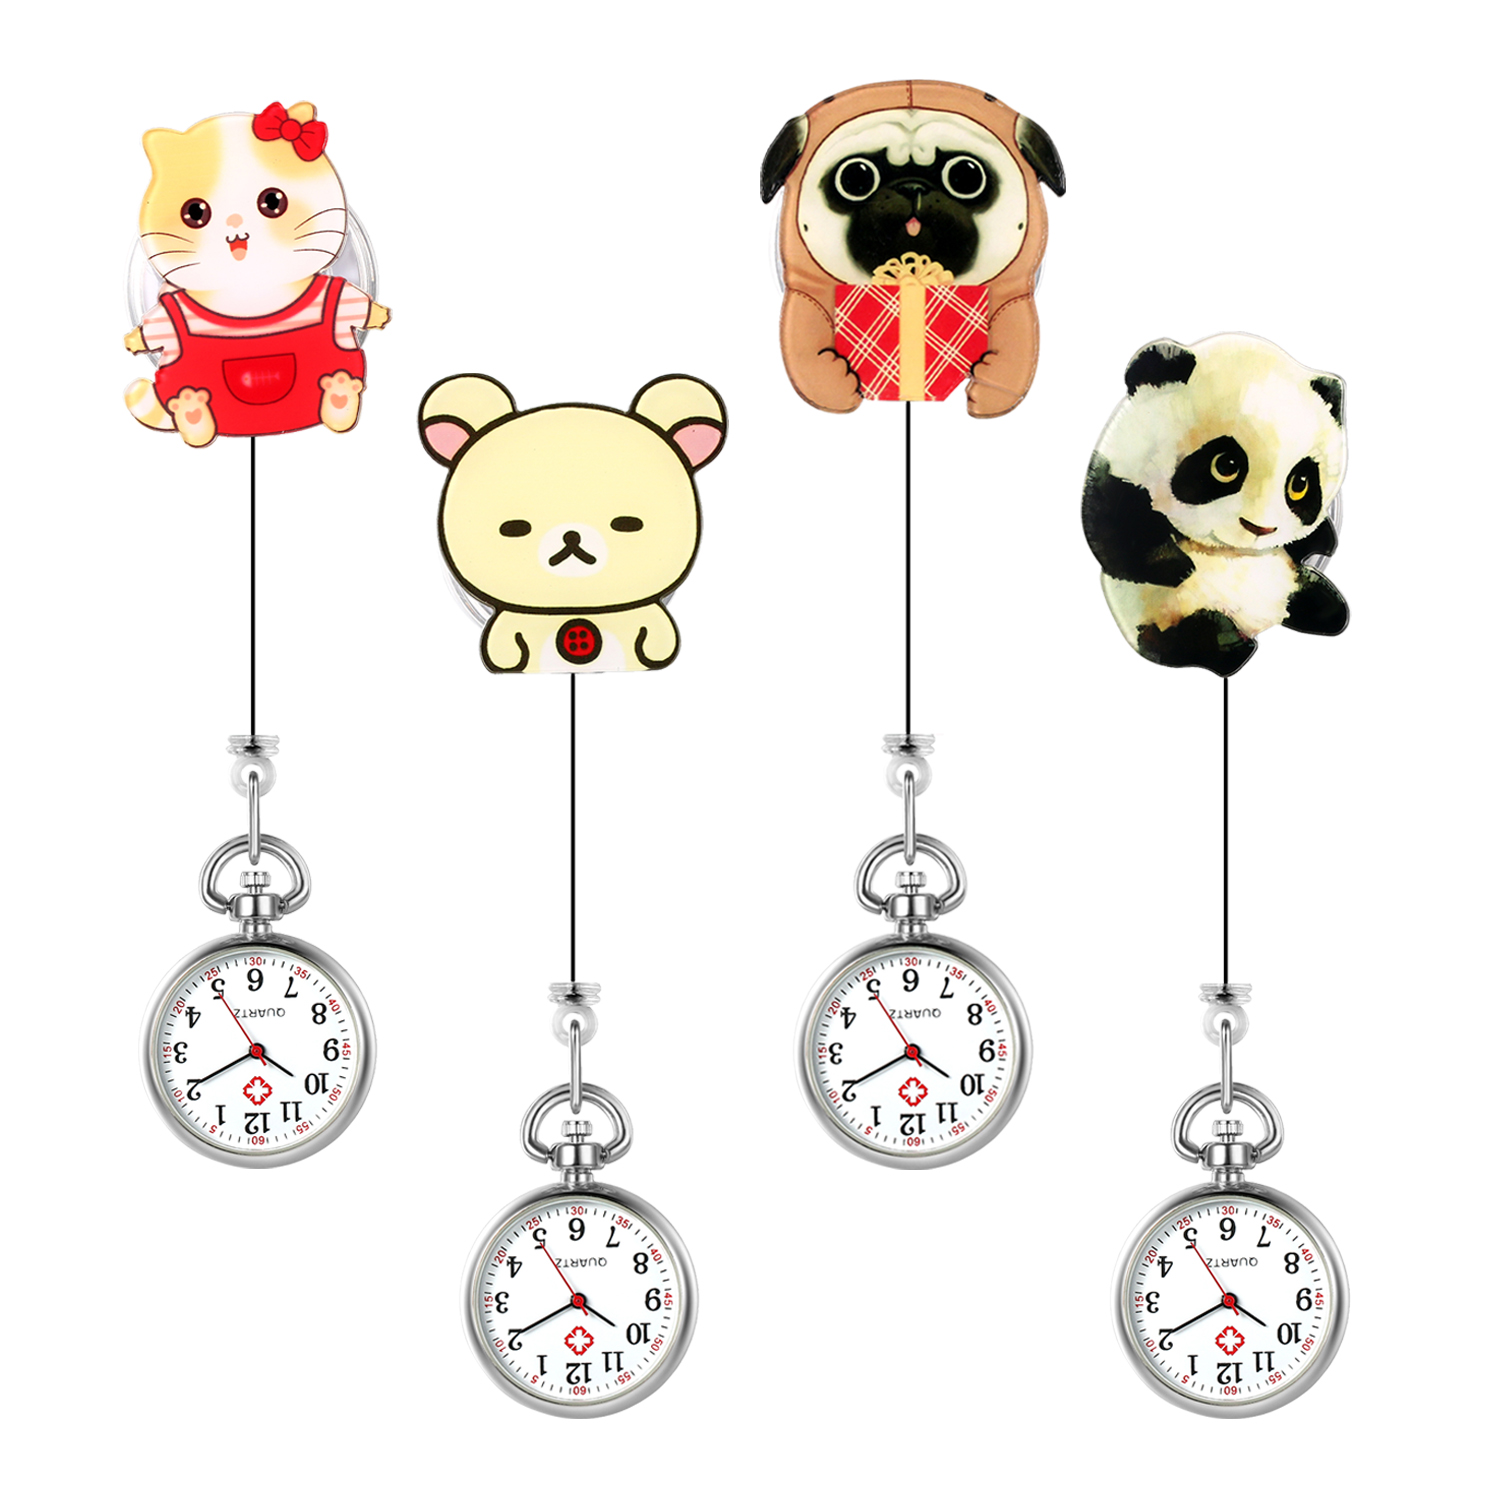 LANCARDO Fashion Lovely Cartoon Animal Design Soft Rubber Nurse Pocket Watches Ladies Women Doctor Medical Watches